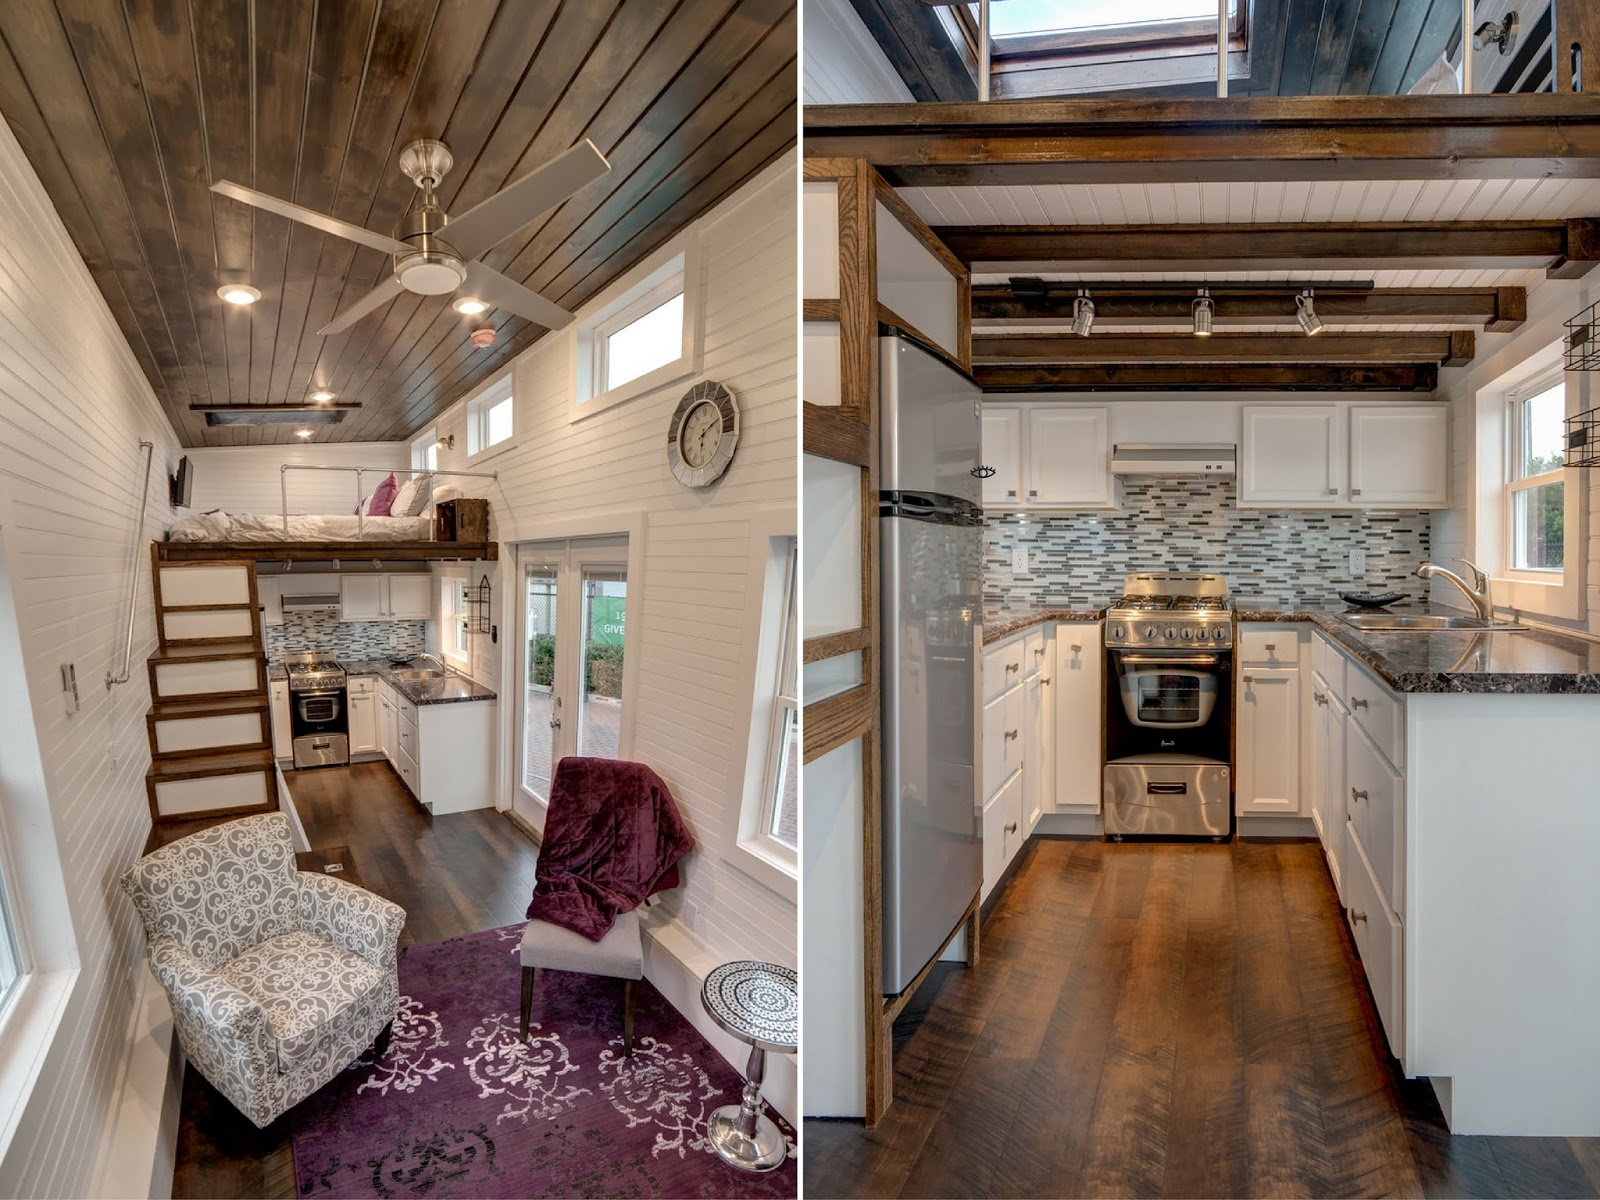 Tiny house town the freedom by alabama tiny homes - Housing interiors ...